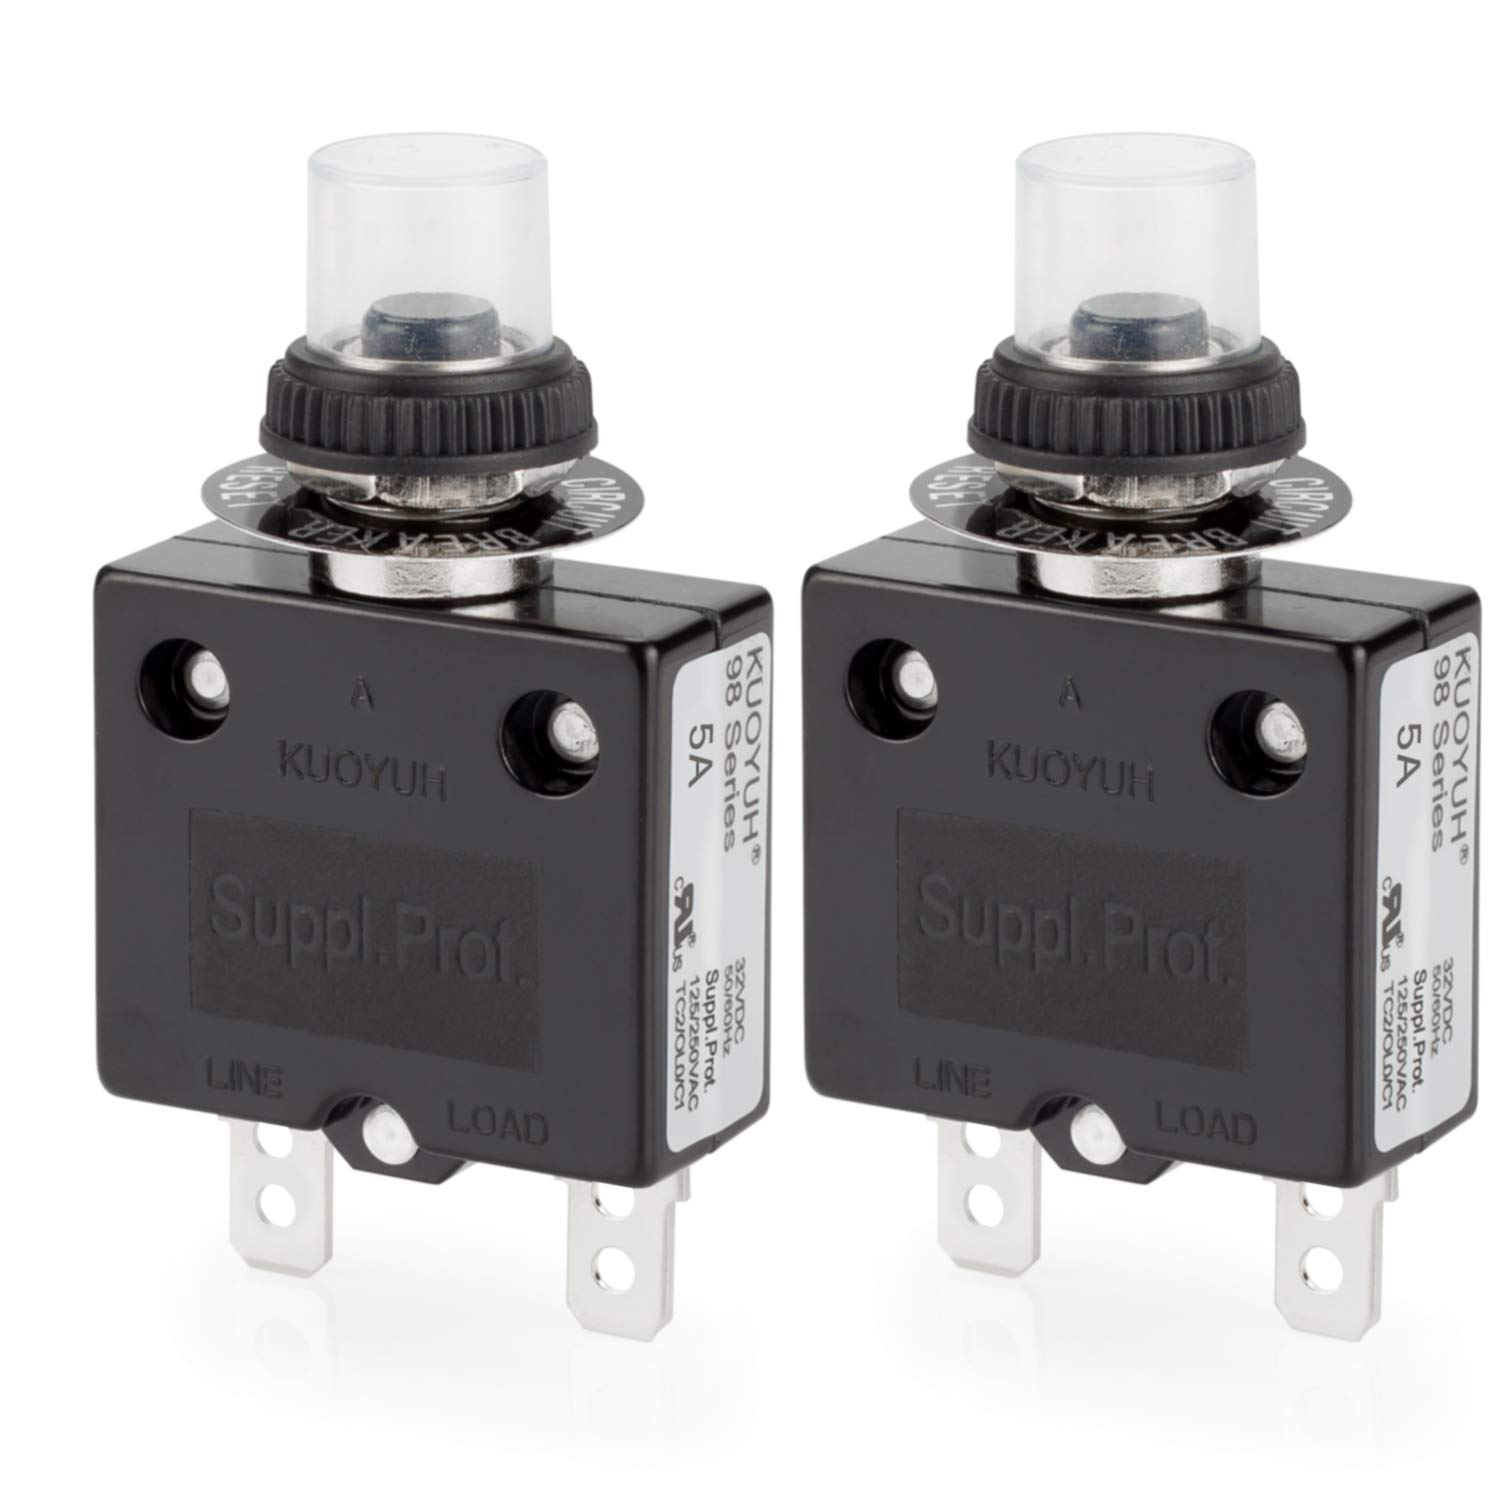 RKURCK 11 Amps Thermal Circuit Breakers 125//250V AC 32V DC Push Button Manual Reset Overload Protector Switch 11A 2 Pack